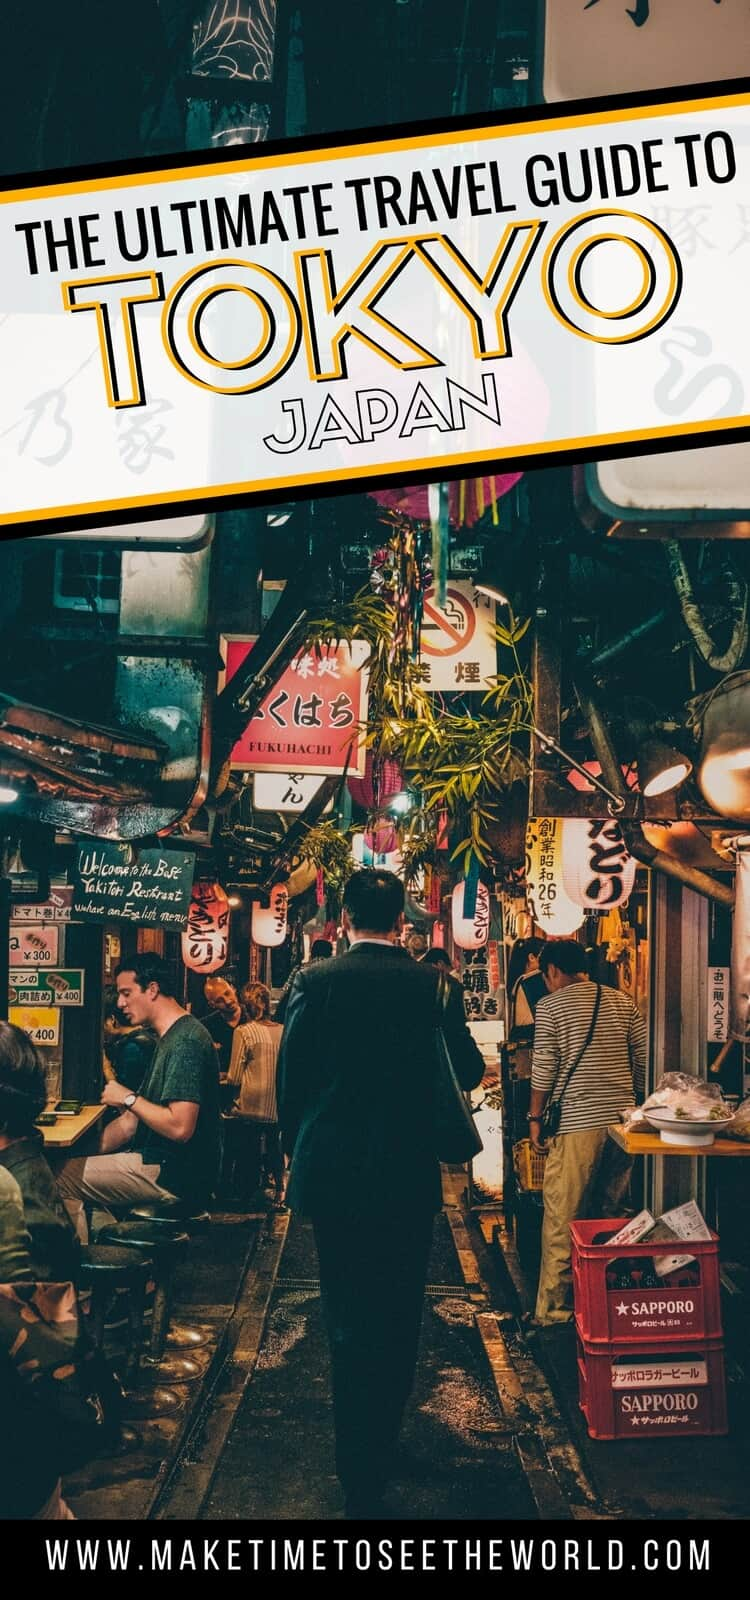 Ultimate Travel Guide to Tokyo Japan overlayed over busy narrow Japanese street with cafes